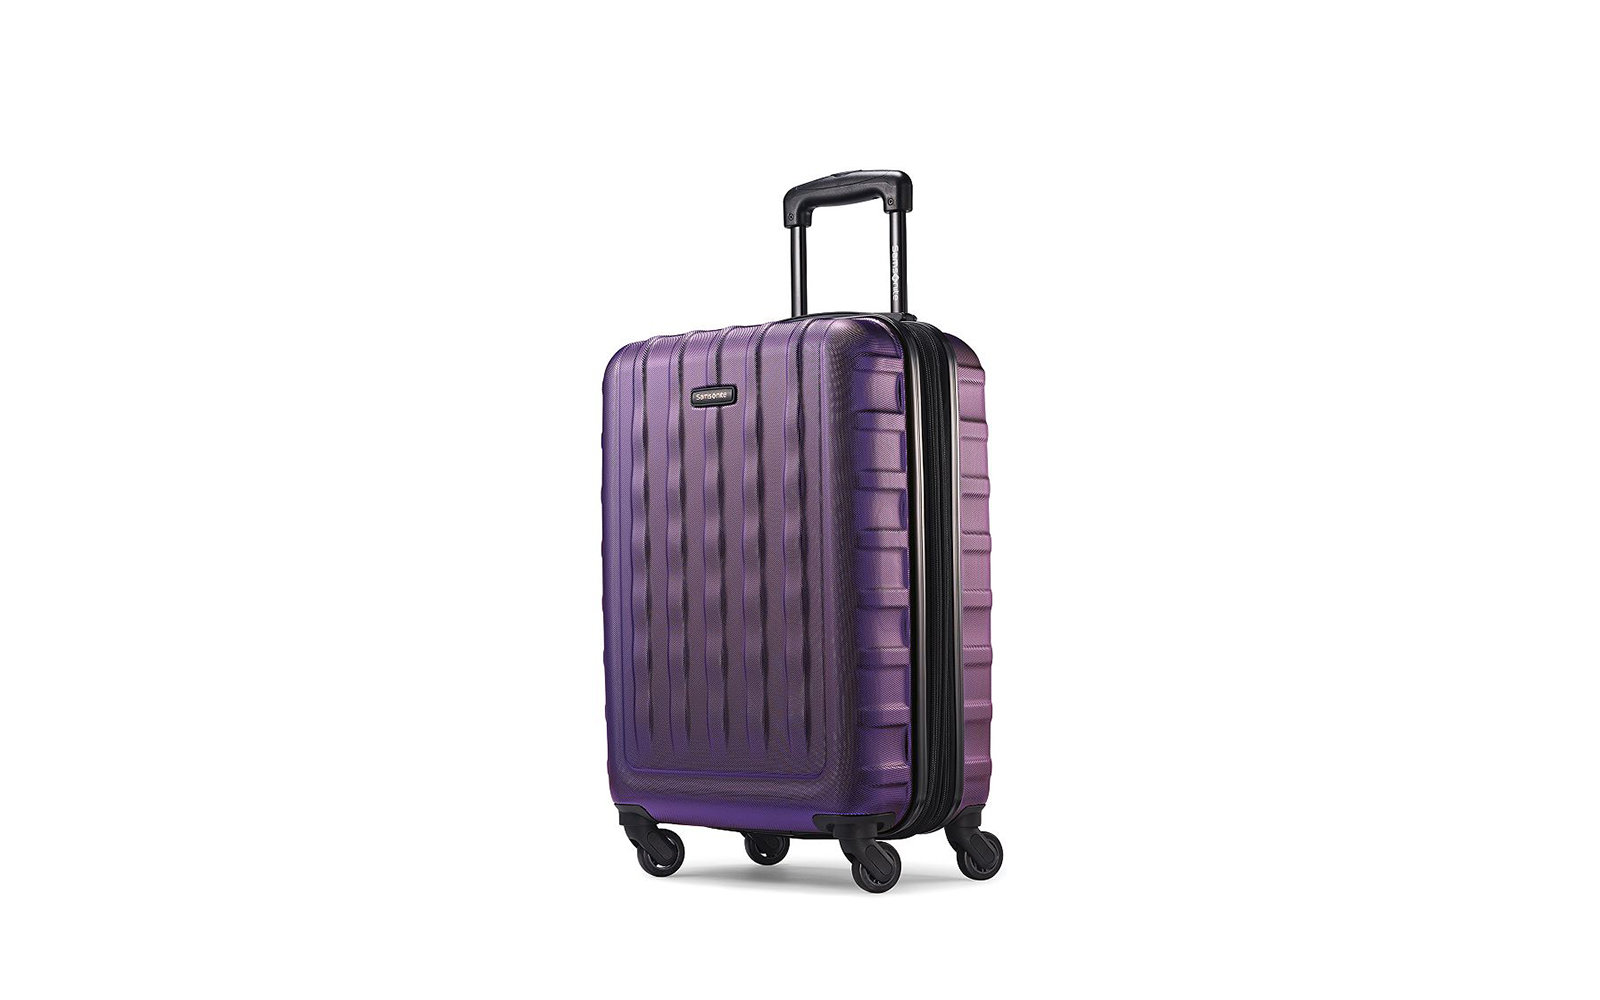 Samsonite ziplite carry-on